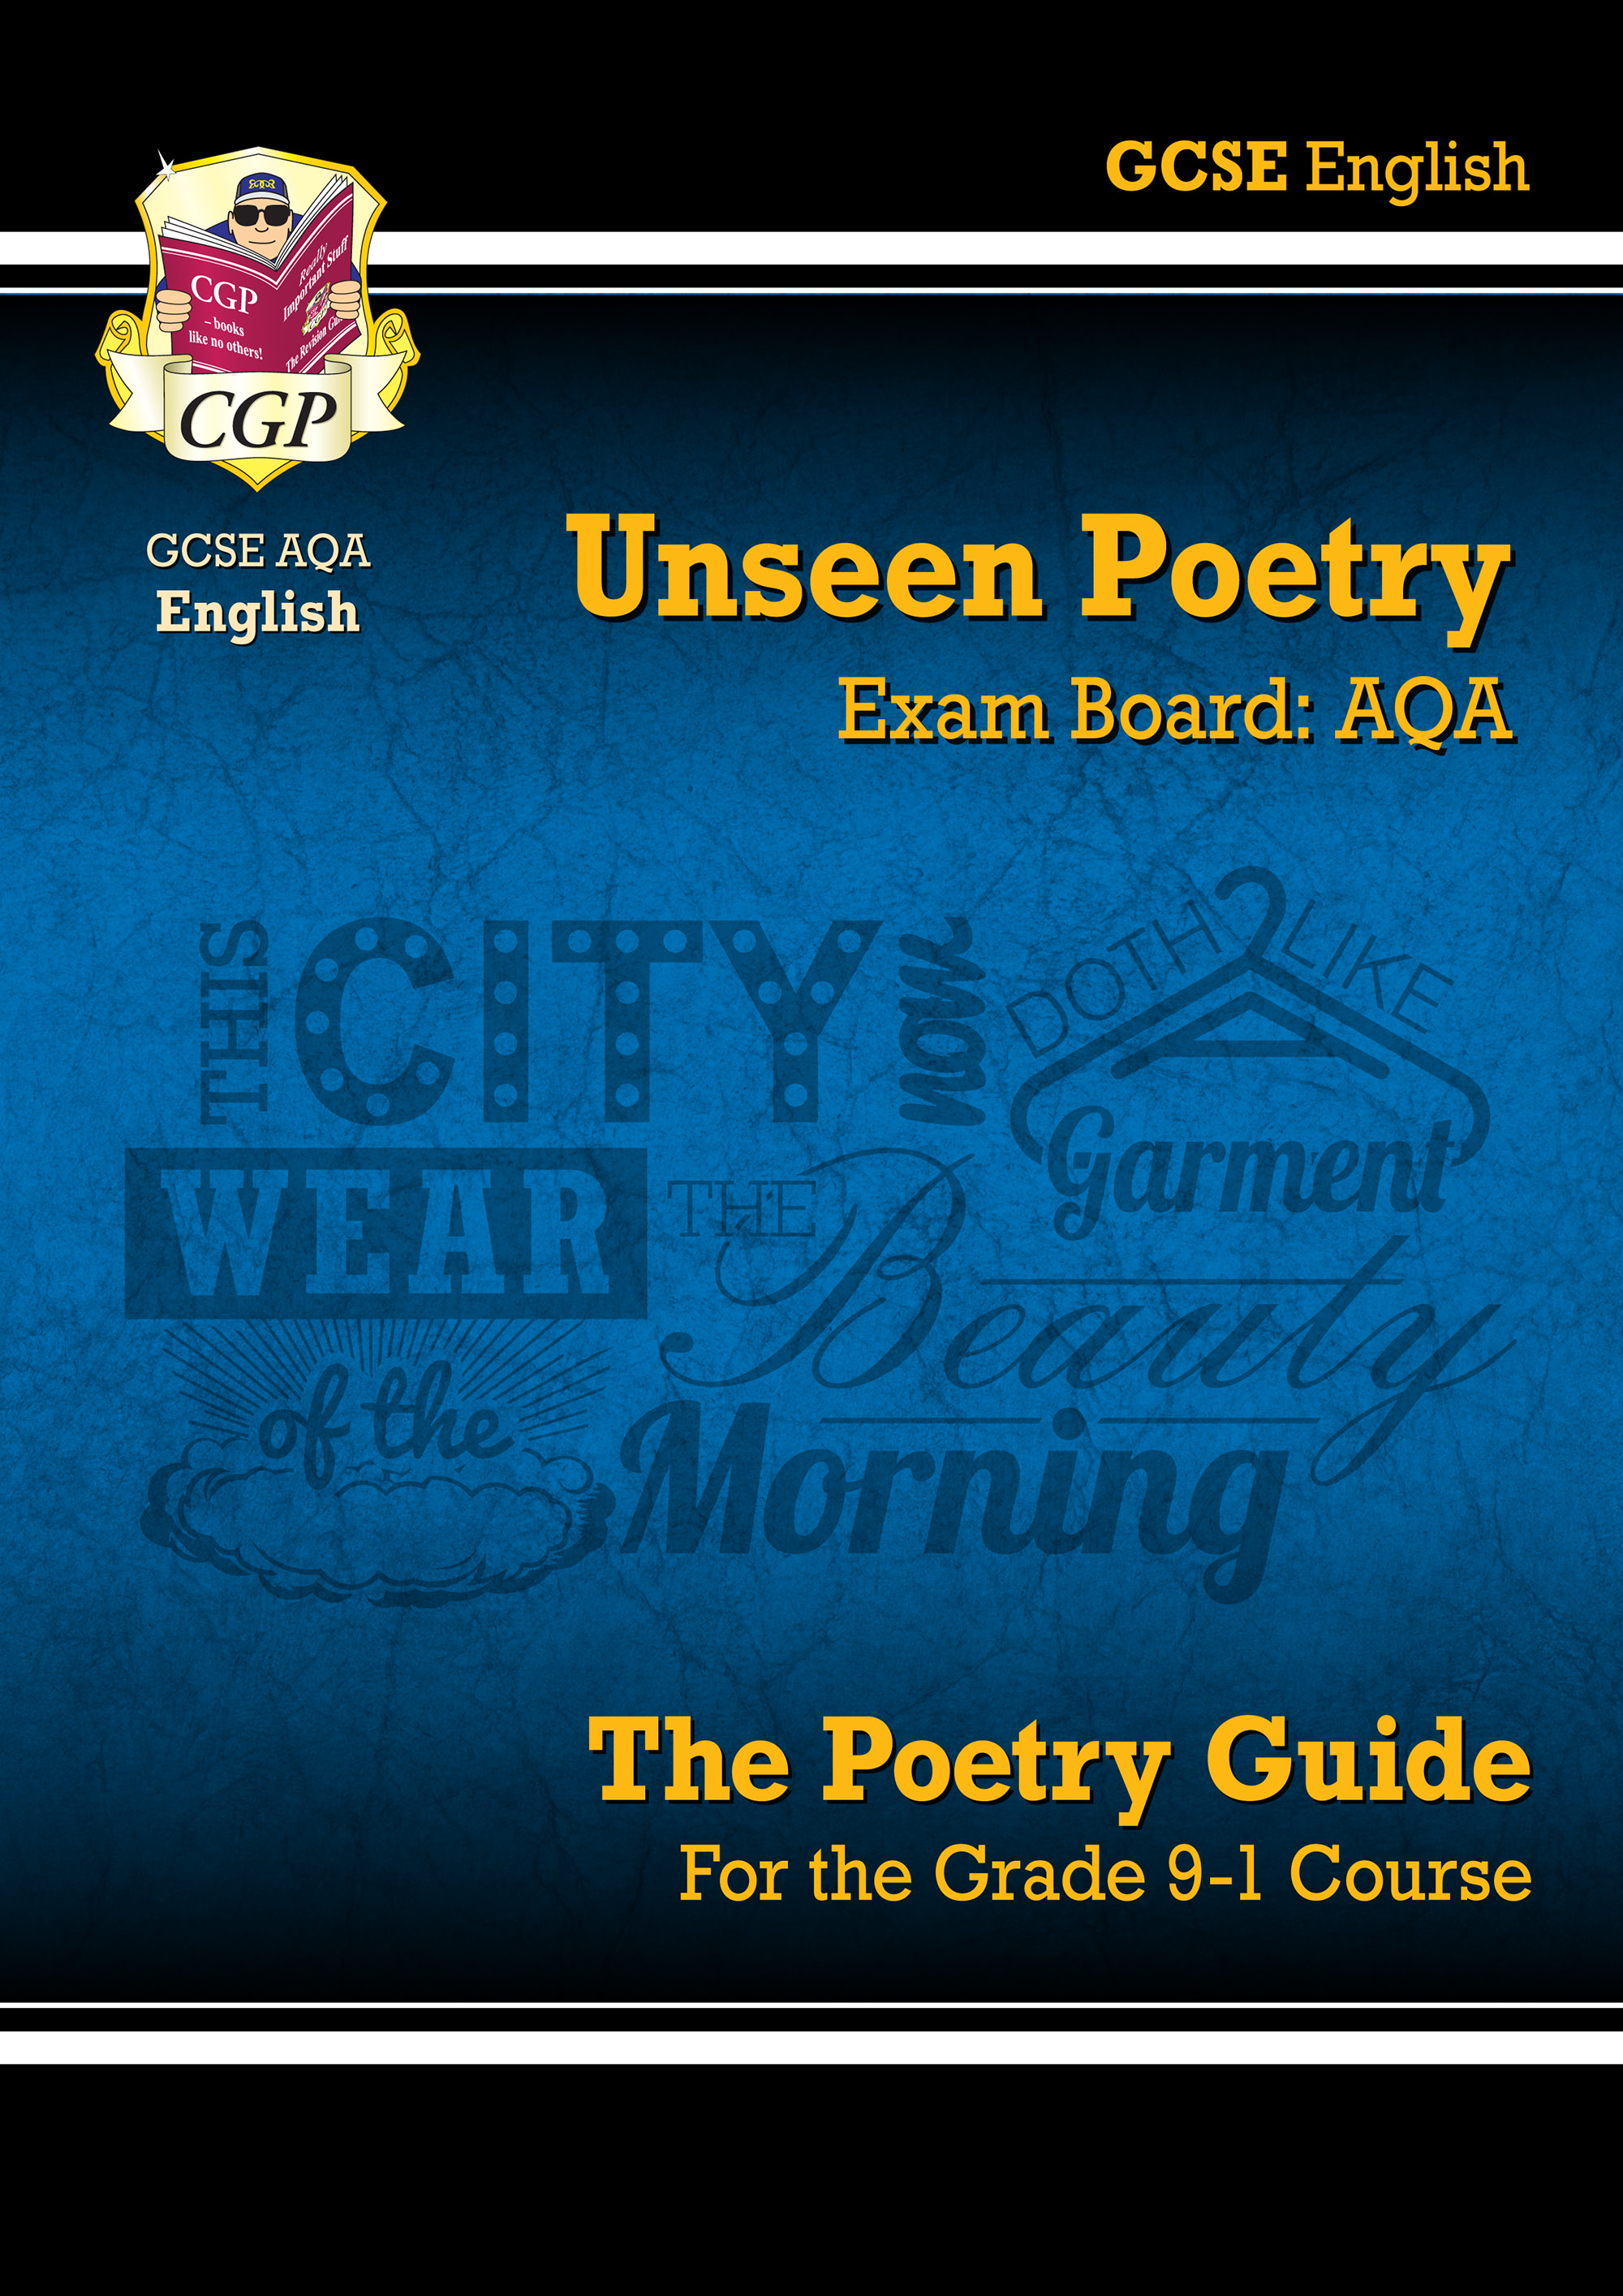 EUAR42 - New Grade 9-1 GCSE English Literature AQA Unseen Poetry Guide - Book 1